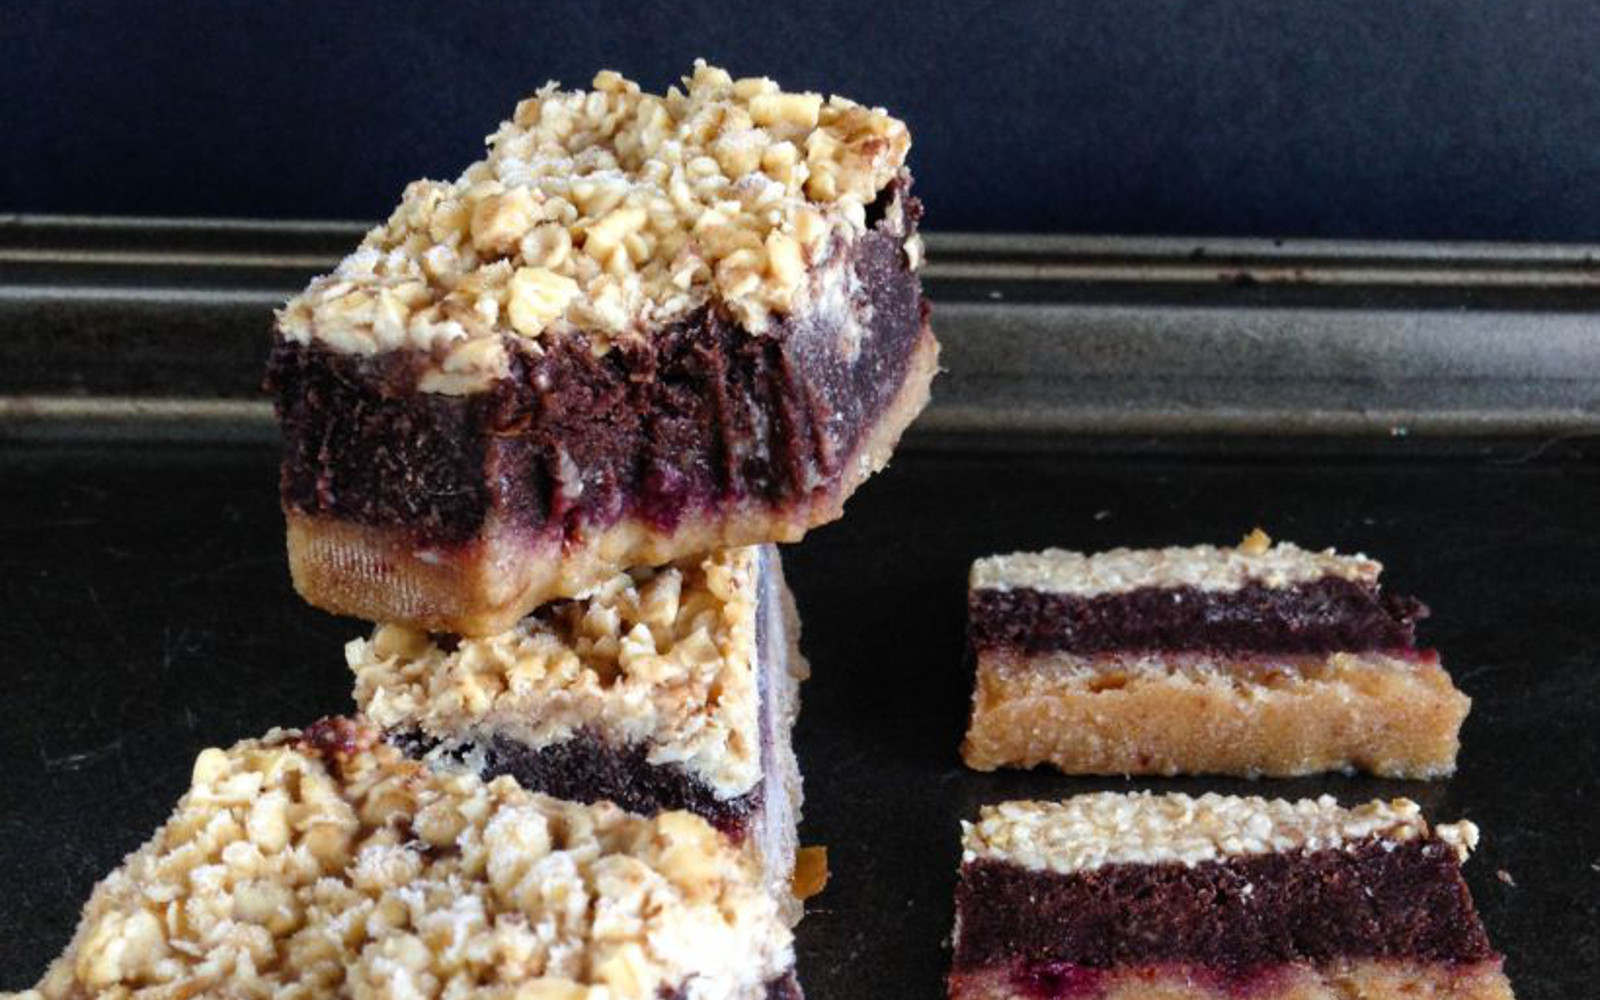 blackberry jam and chocolate crumble bars